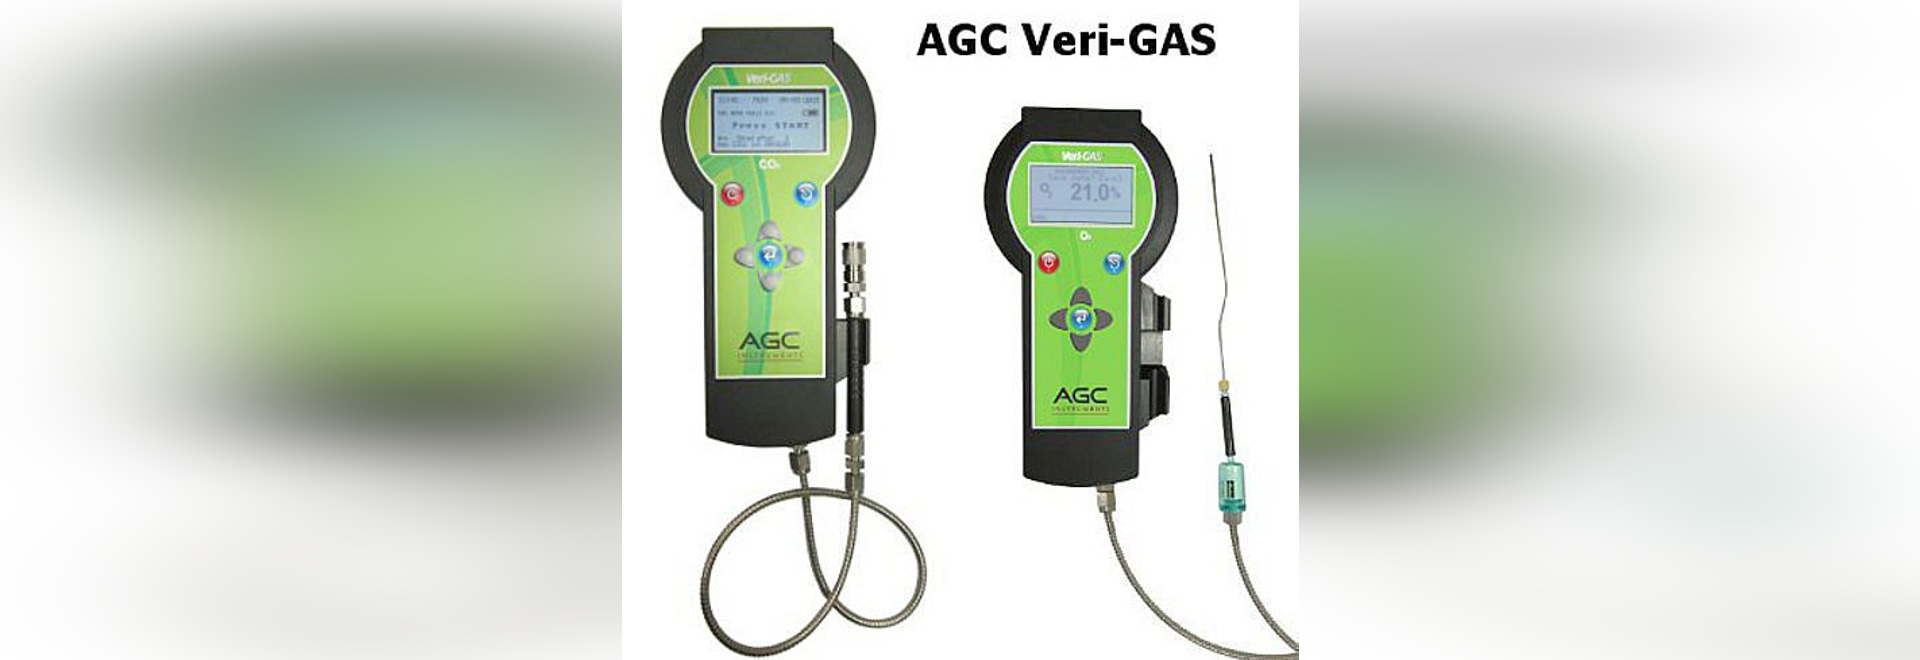 One-touch analysis to guarantee high quality standards for welding gases with the AGC Veri-GAS analyser range